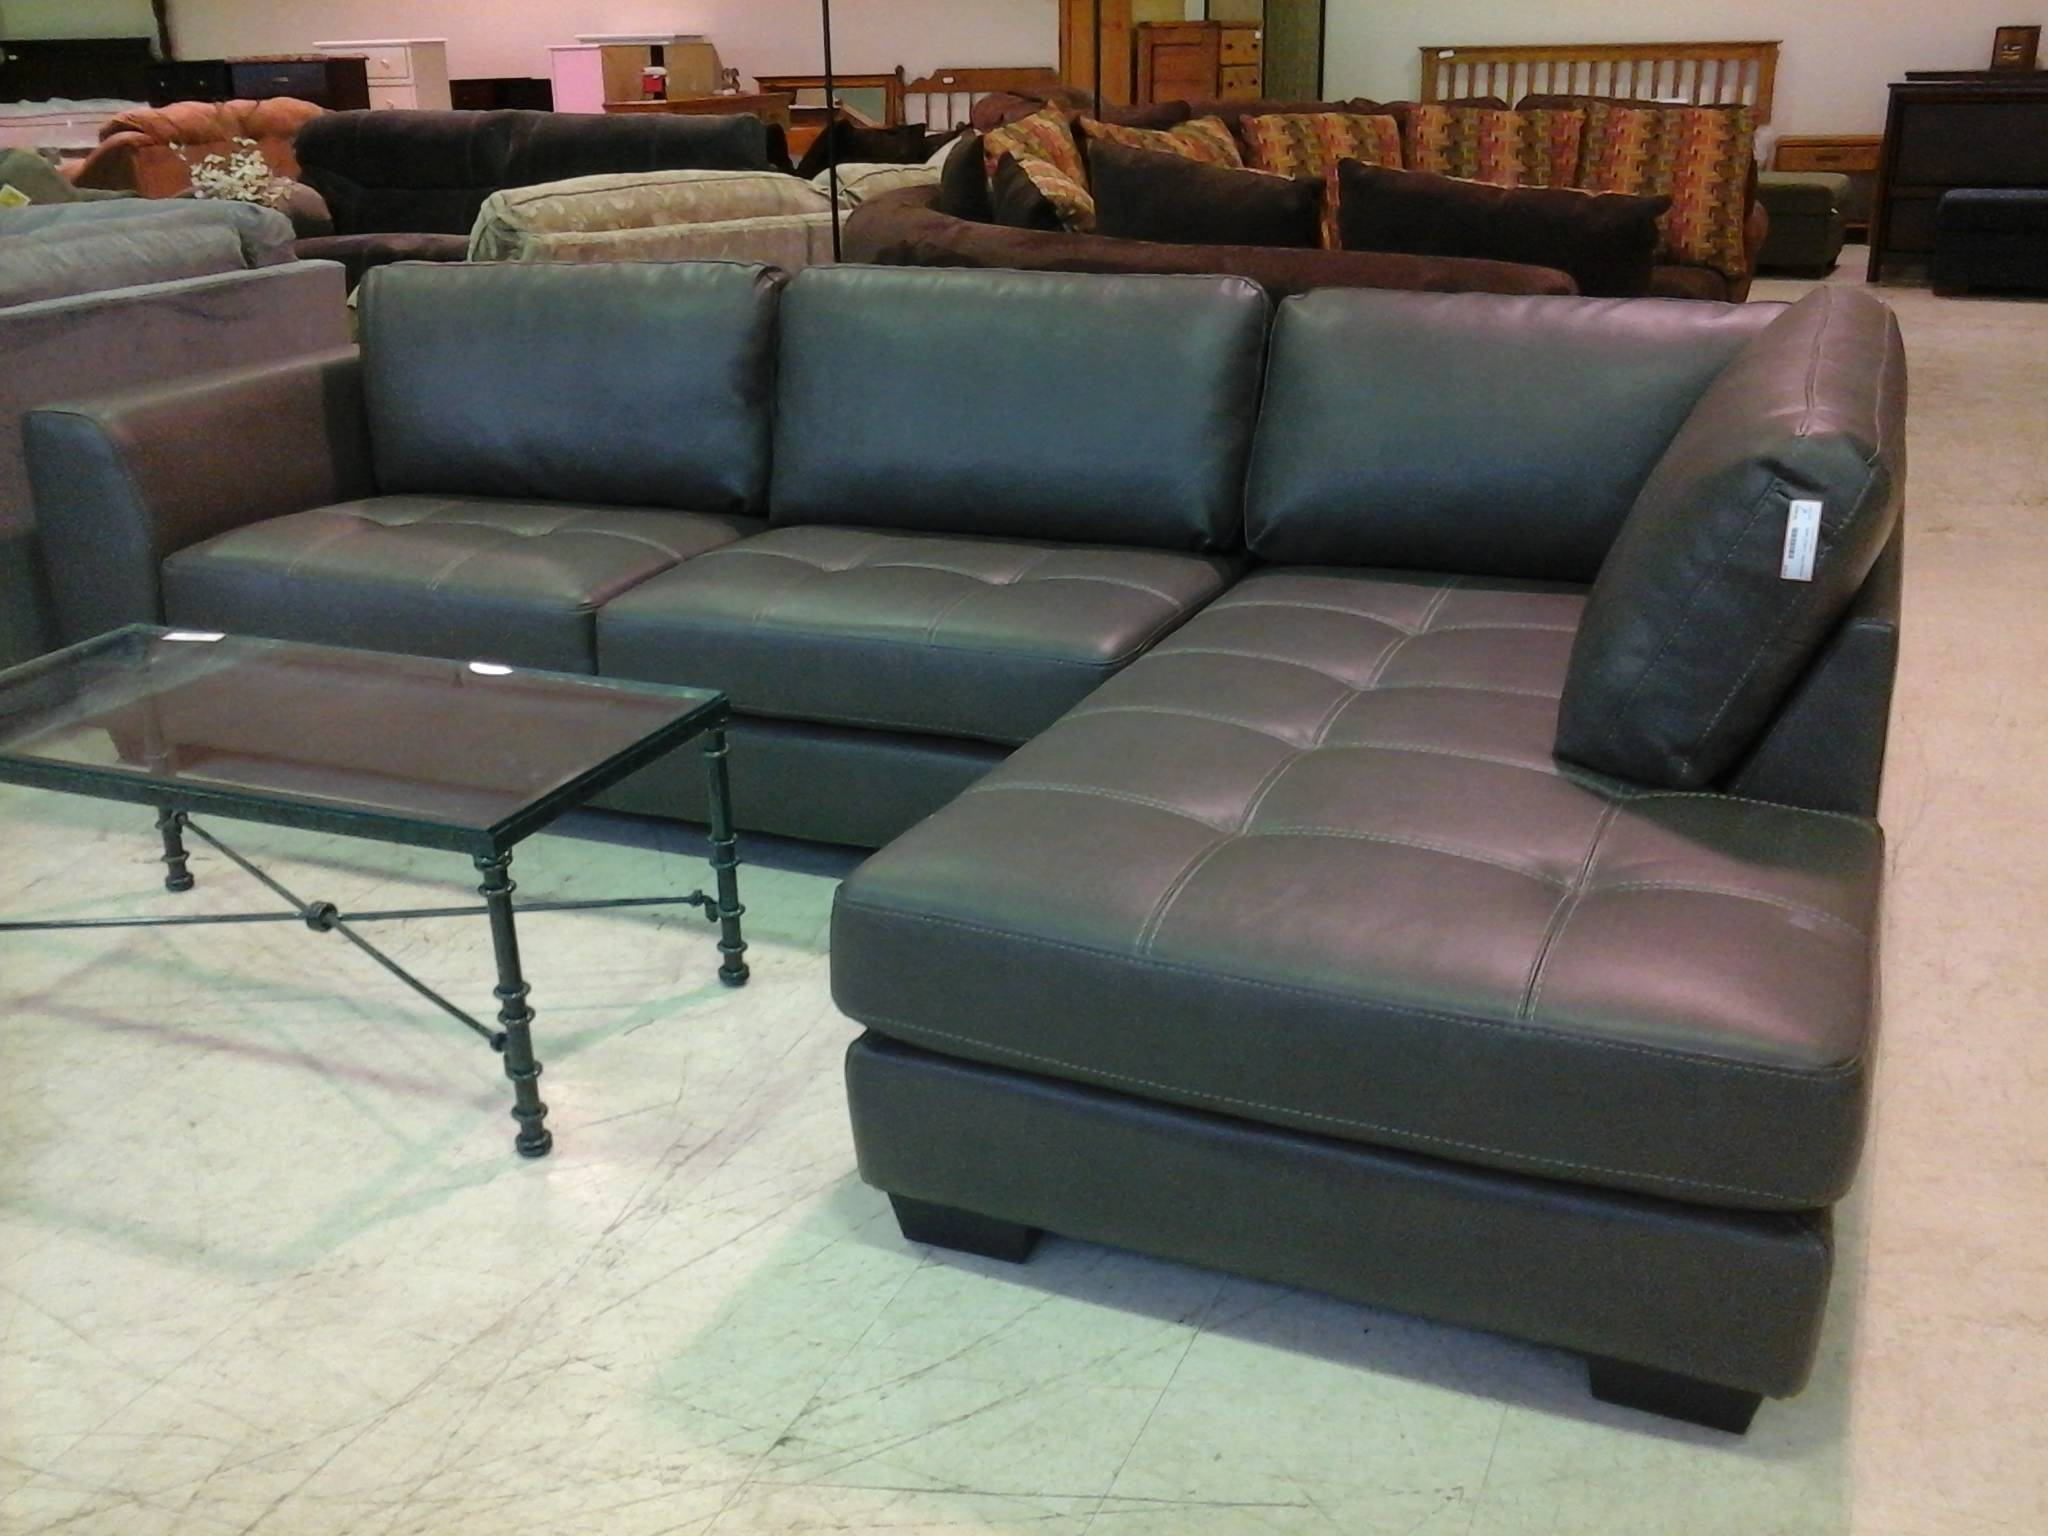 Charcoal Grey Sectional Sofa - Tourdecarroll pertaining to Black Leather Sectional Sleeper Sofas (Image 5 of 30)